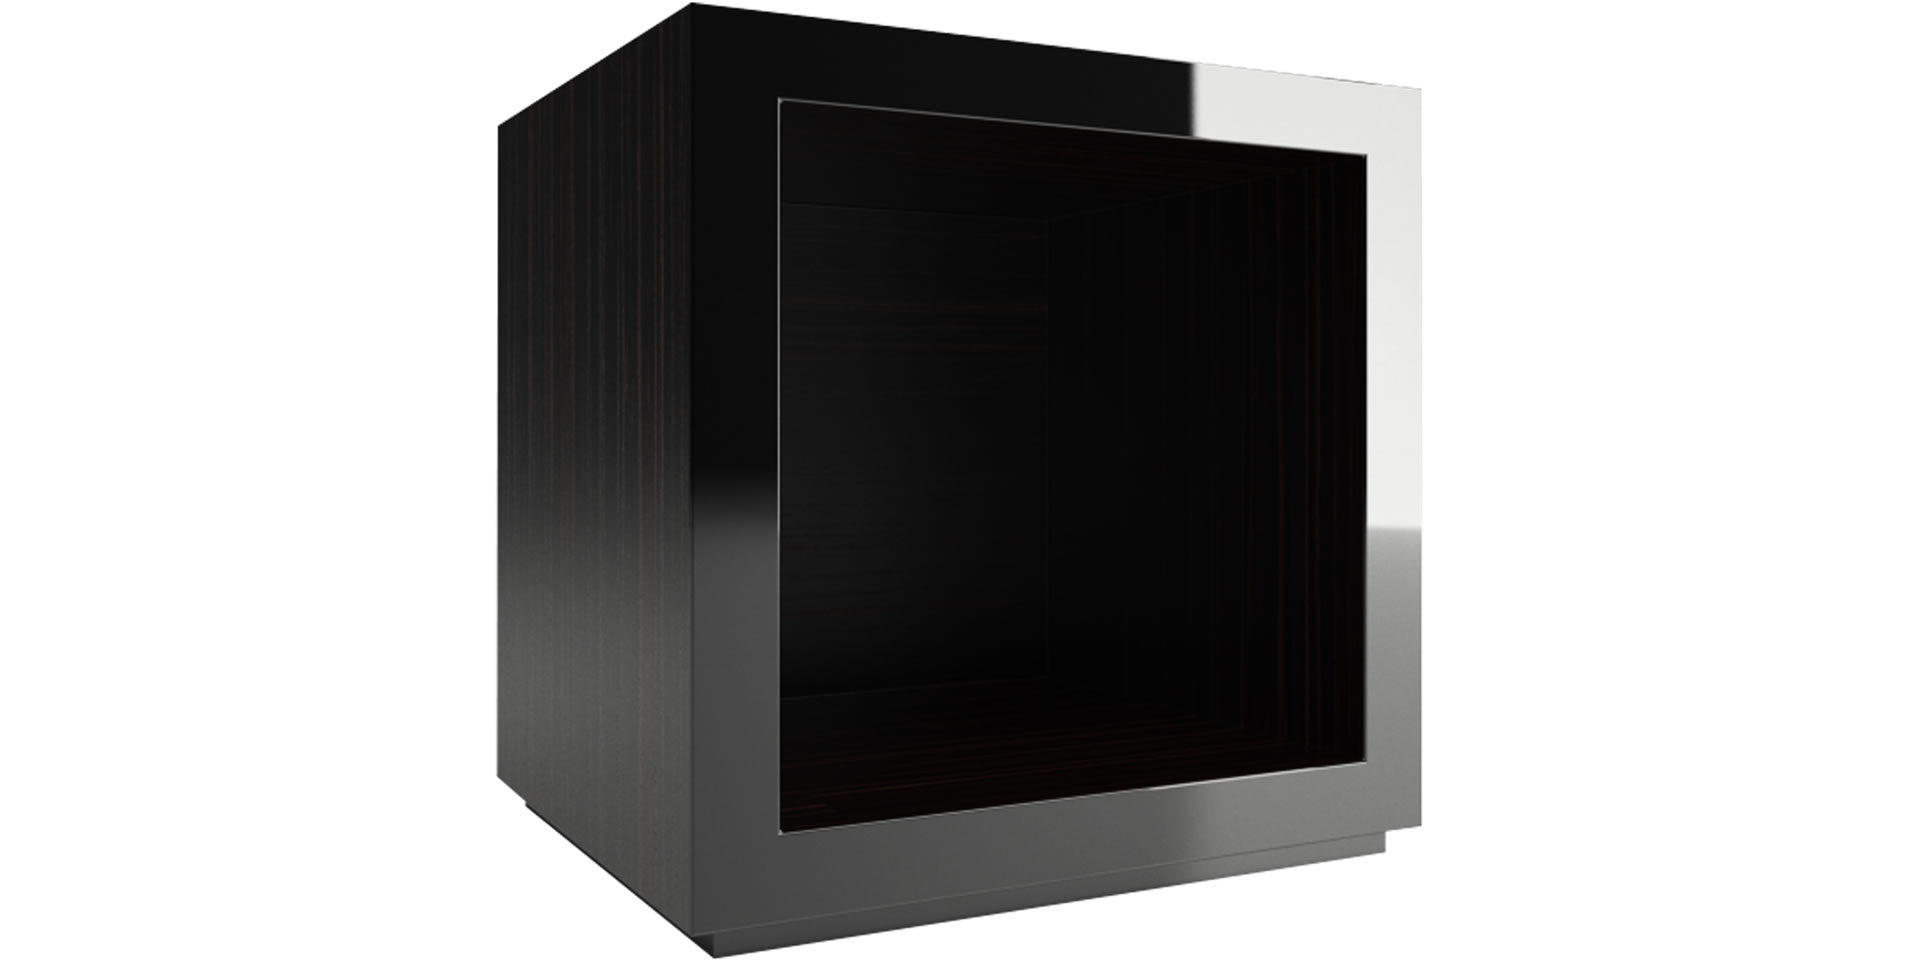 regalsystem lectulus quadratische design w rfel von rechteck. Black Bedroom Furniture Sets. Home Design Ideas